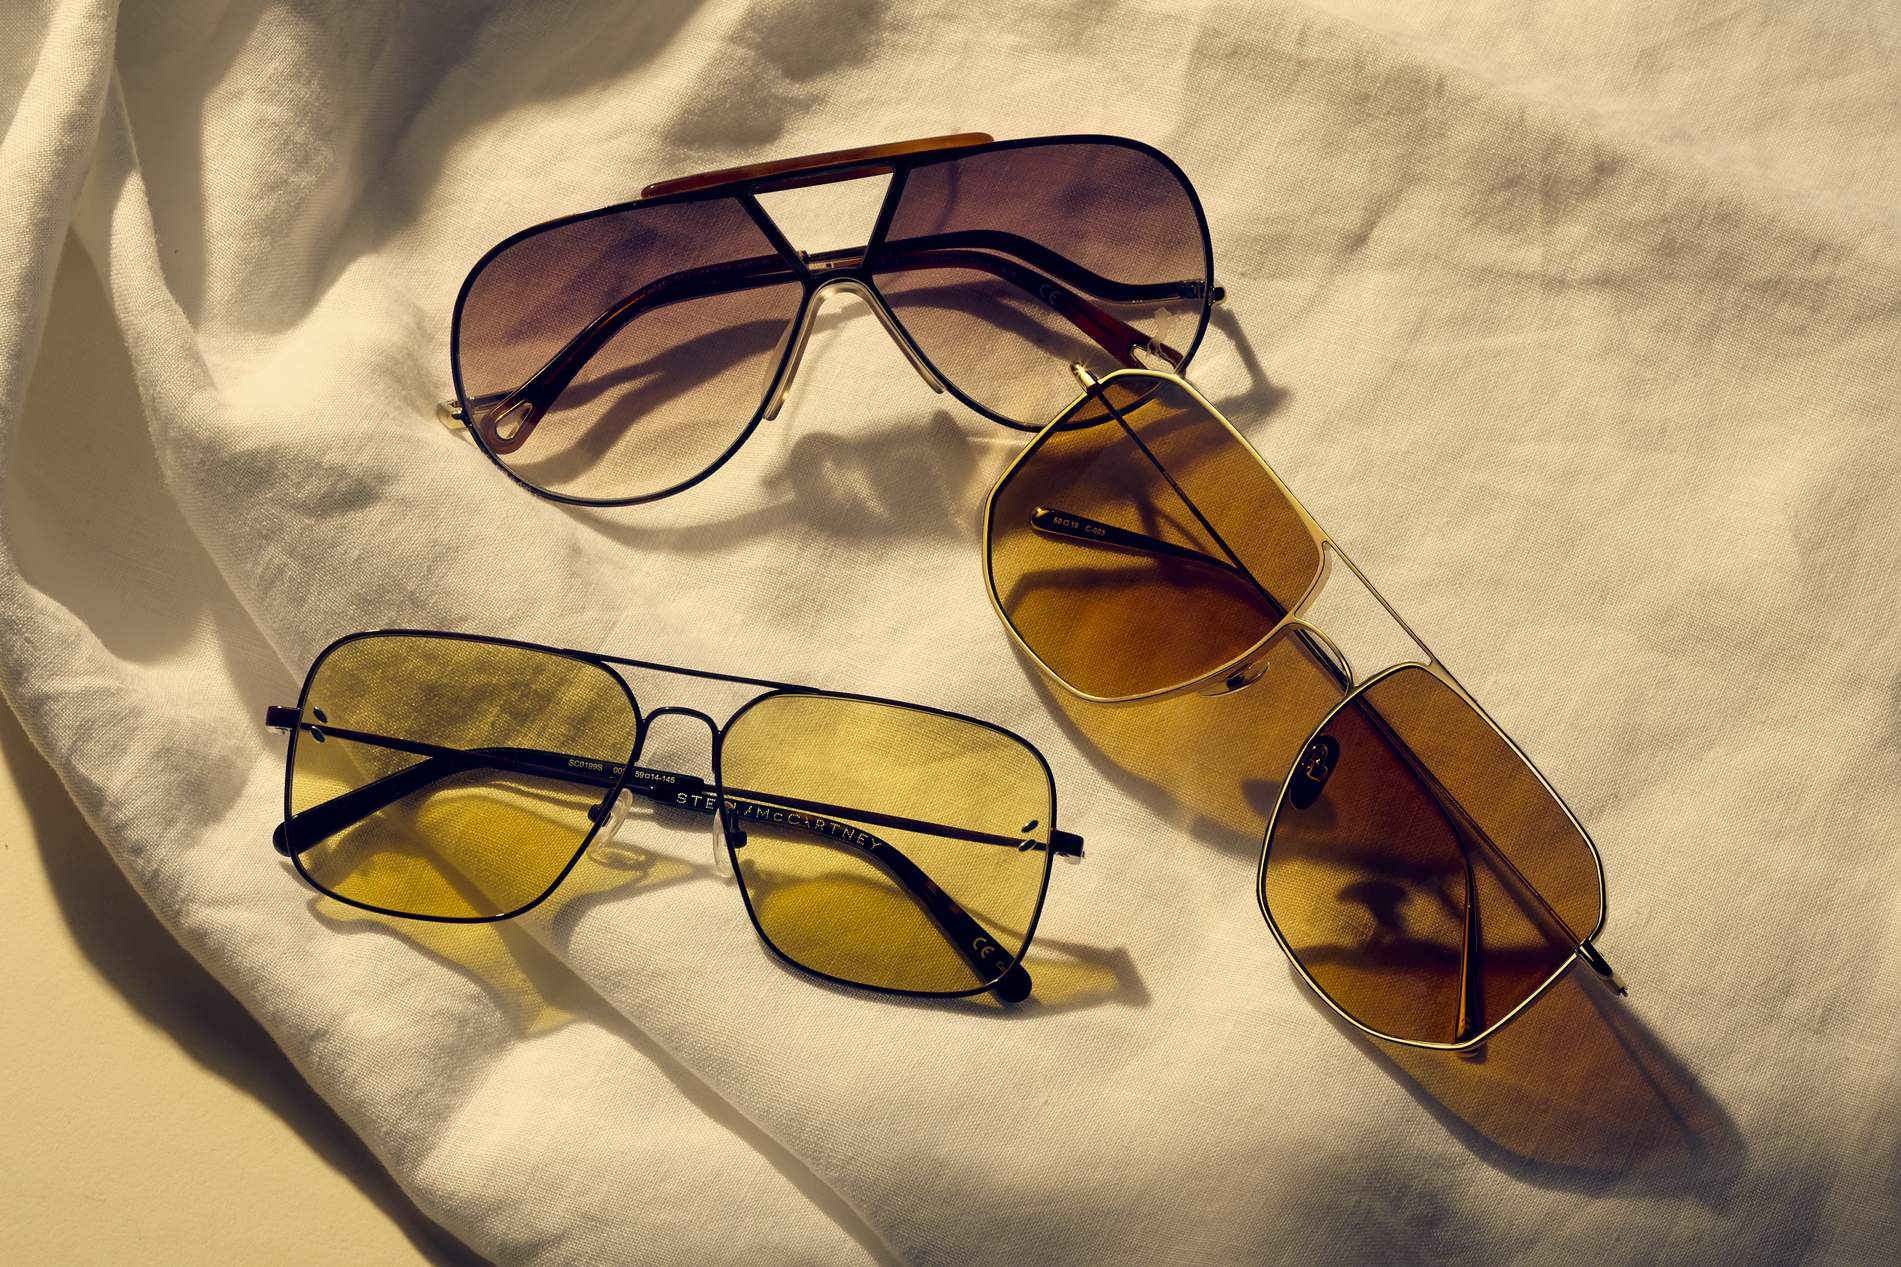 Retro Sunglasses: The Specs The Fashion Crowd Love | PORTER